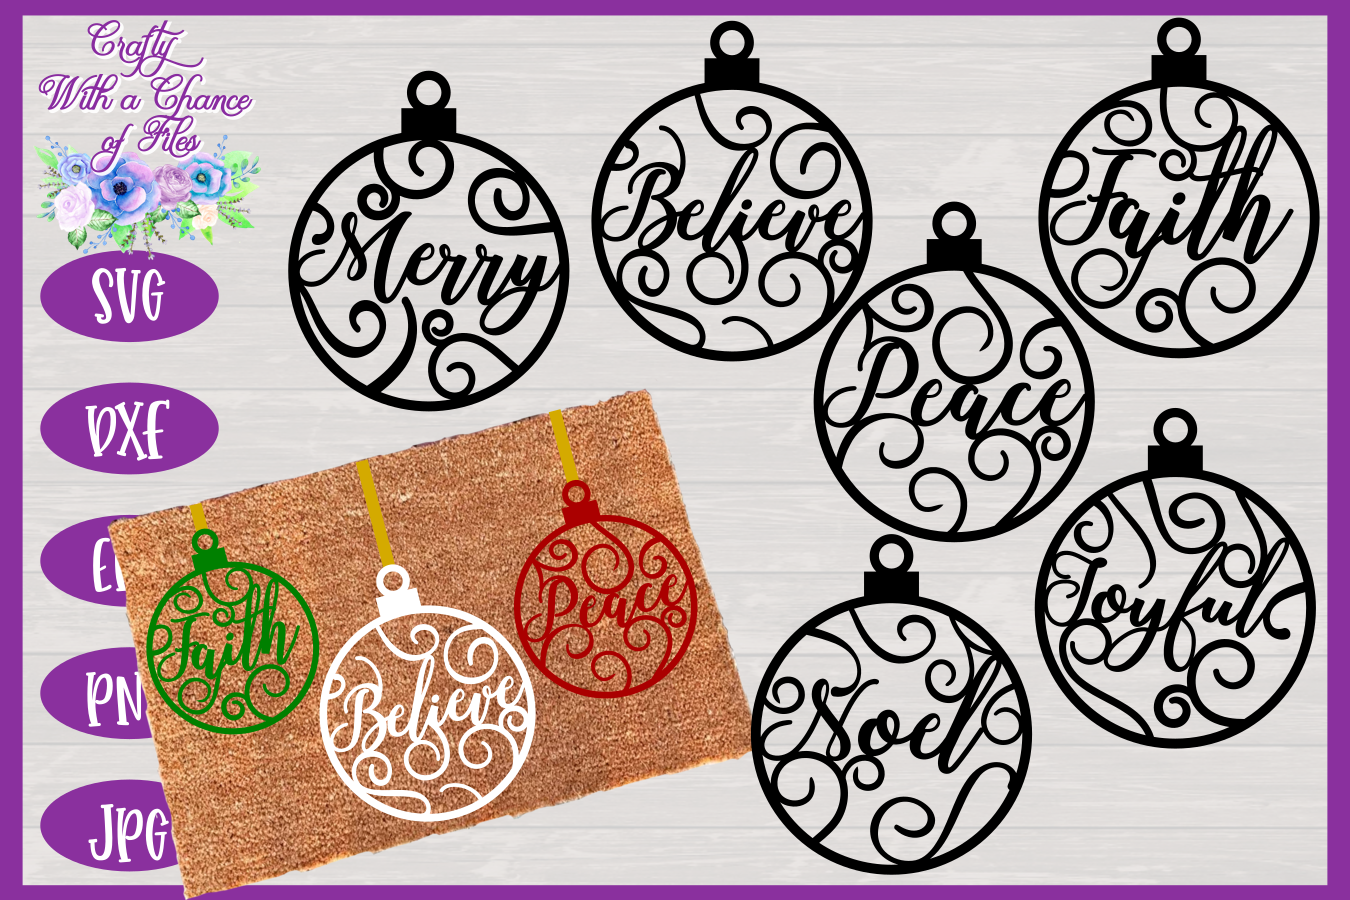 Christmas Word Ornaments SVG | Laser Cut Baubles SVG example image 1